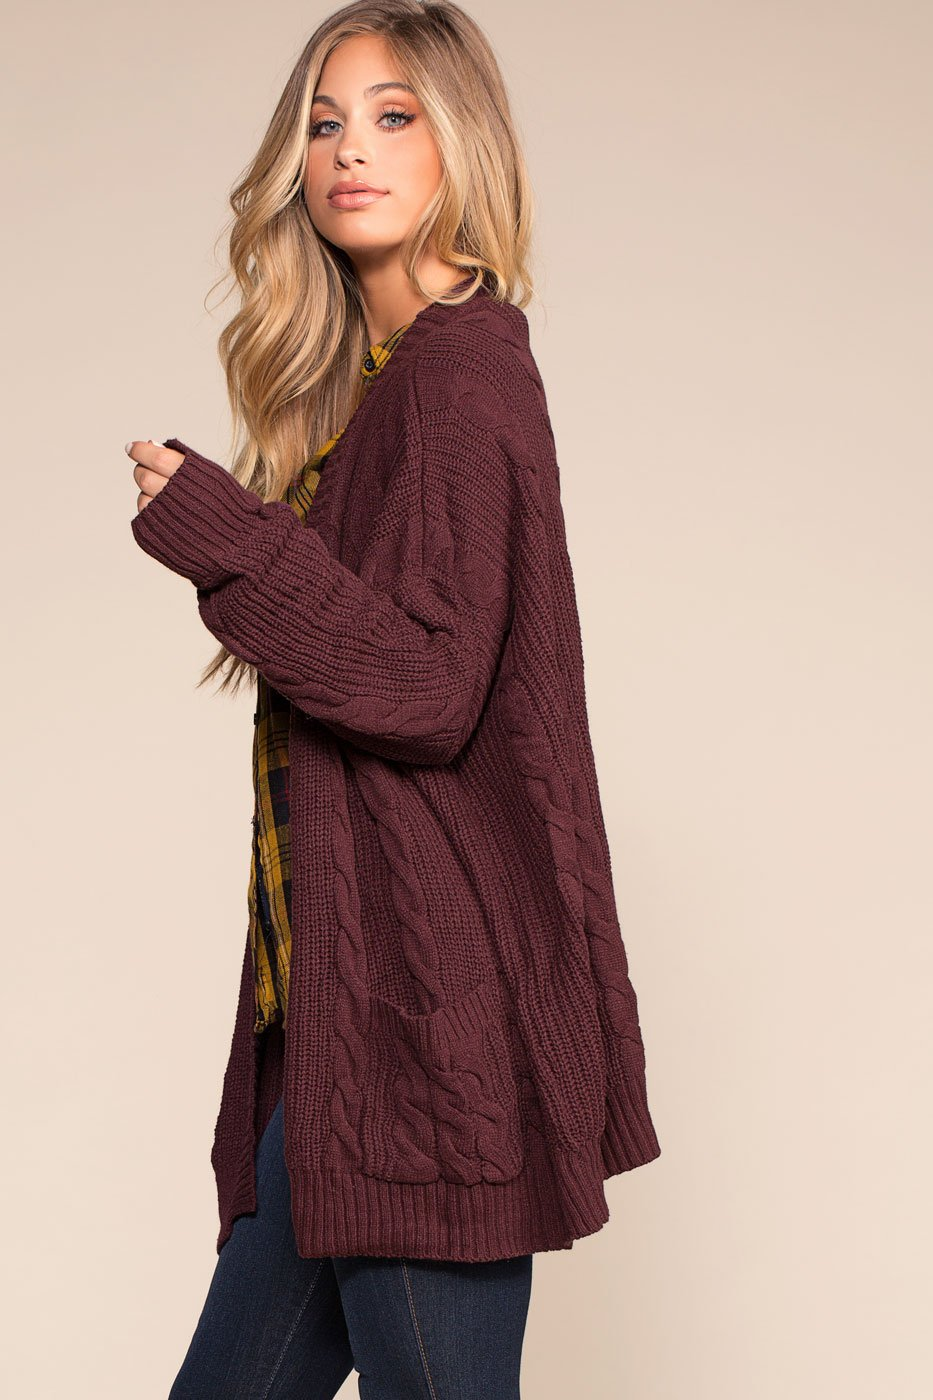 fae81337c55 ... Cardigans - Cozy Cable Oversized Cardigan Sweater - Burgundy ...